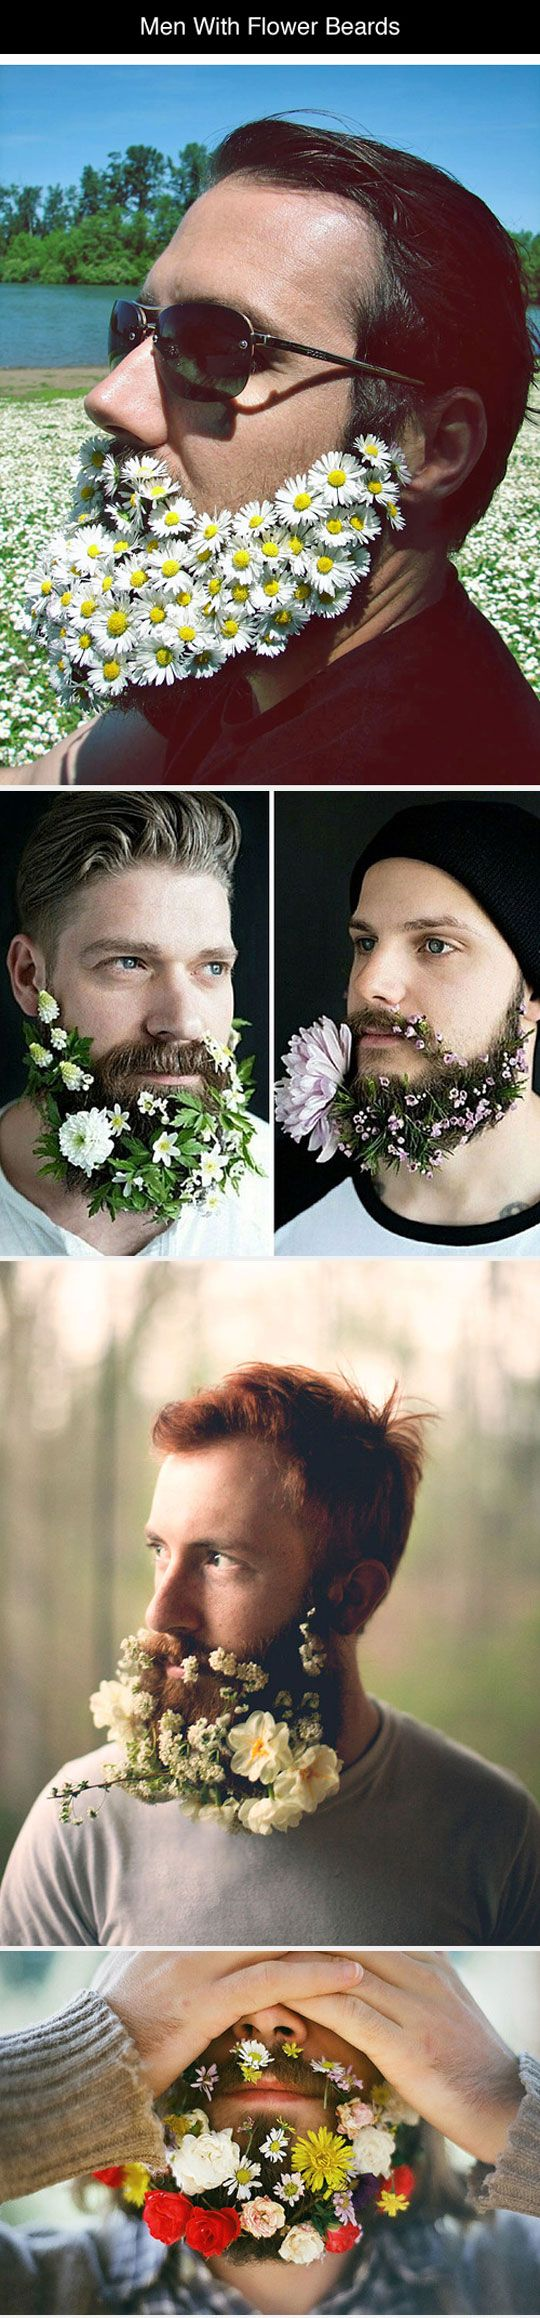 Men With Fabulous Flower Beards. Lol this is awesome